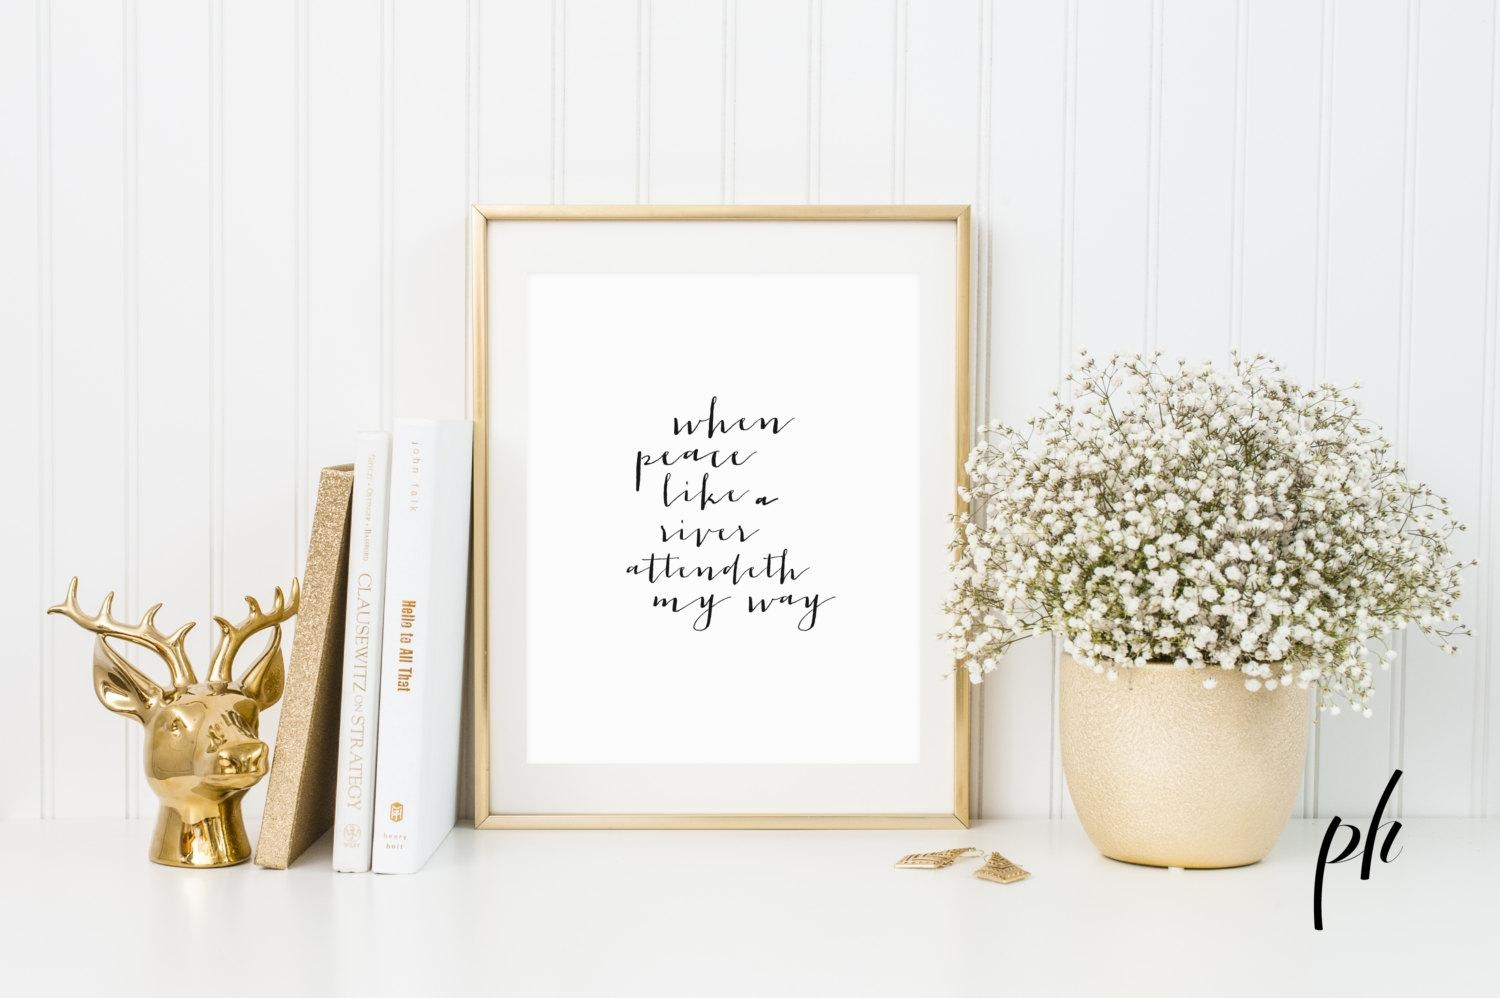 Hymn Print Hymns Hymn Art Hymns And Verses Calligraphy Throughout Bible Verses Framed Art (Image 15 of 20)